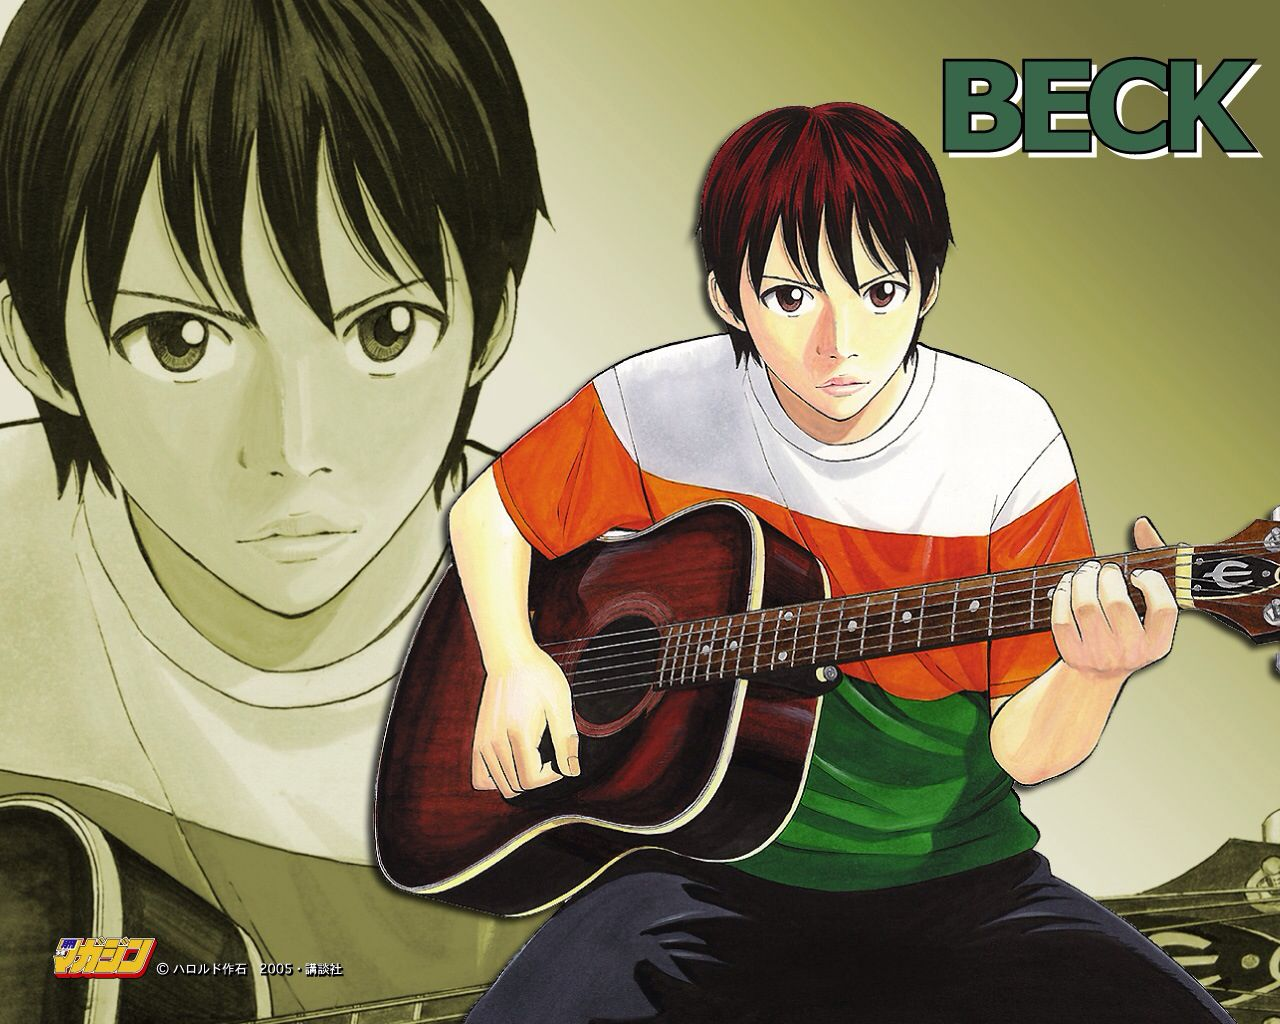 Beck Mongolian Chop Squad Anime Wallpaper Anime Image